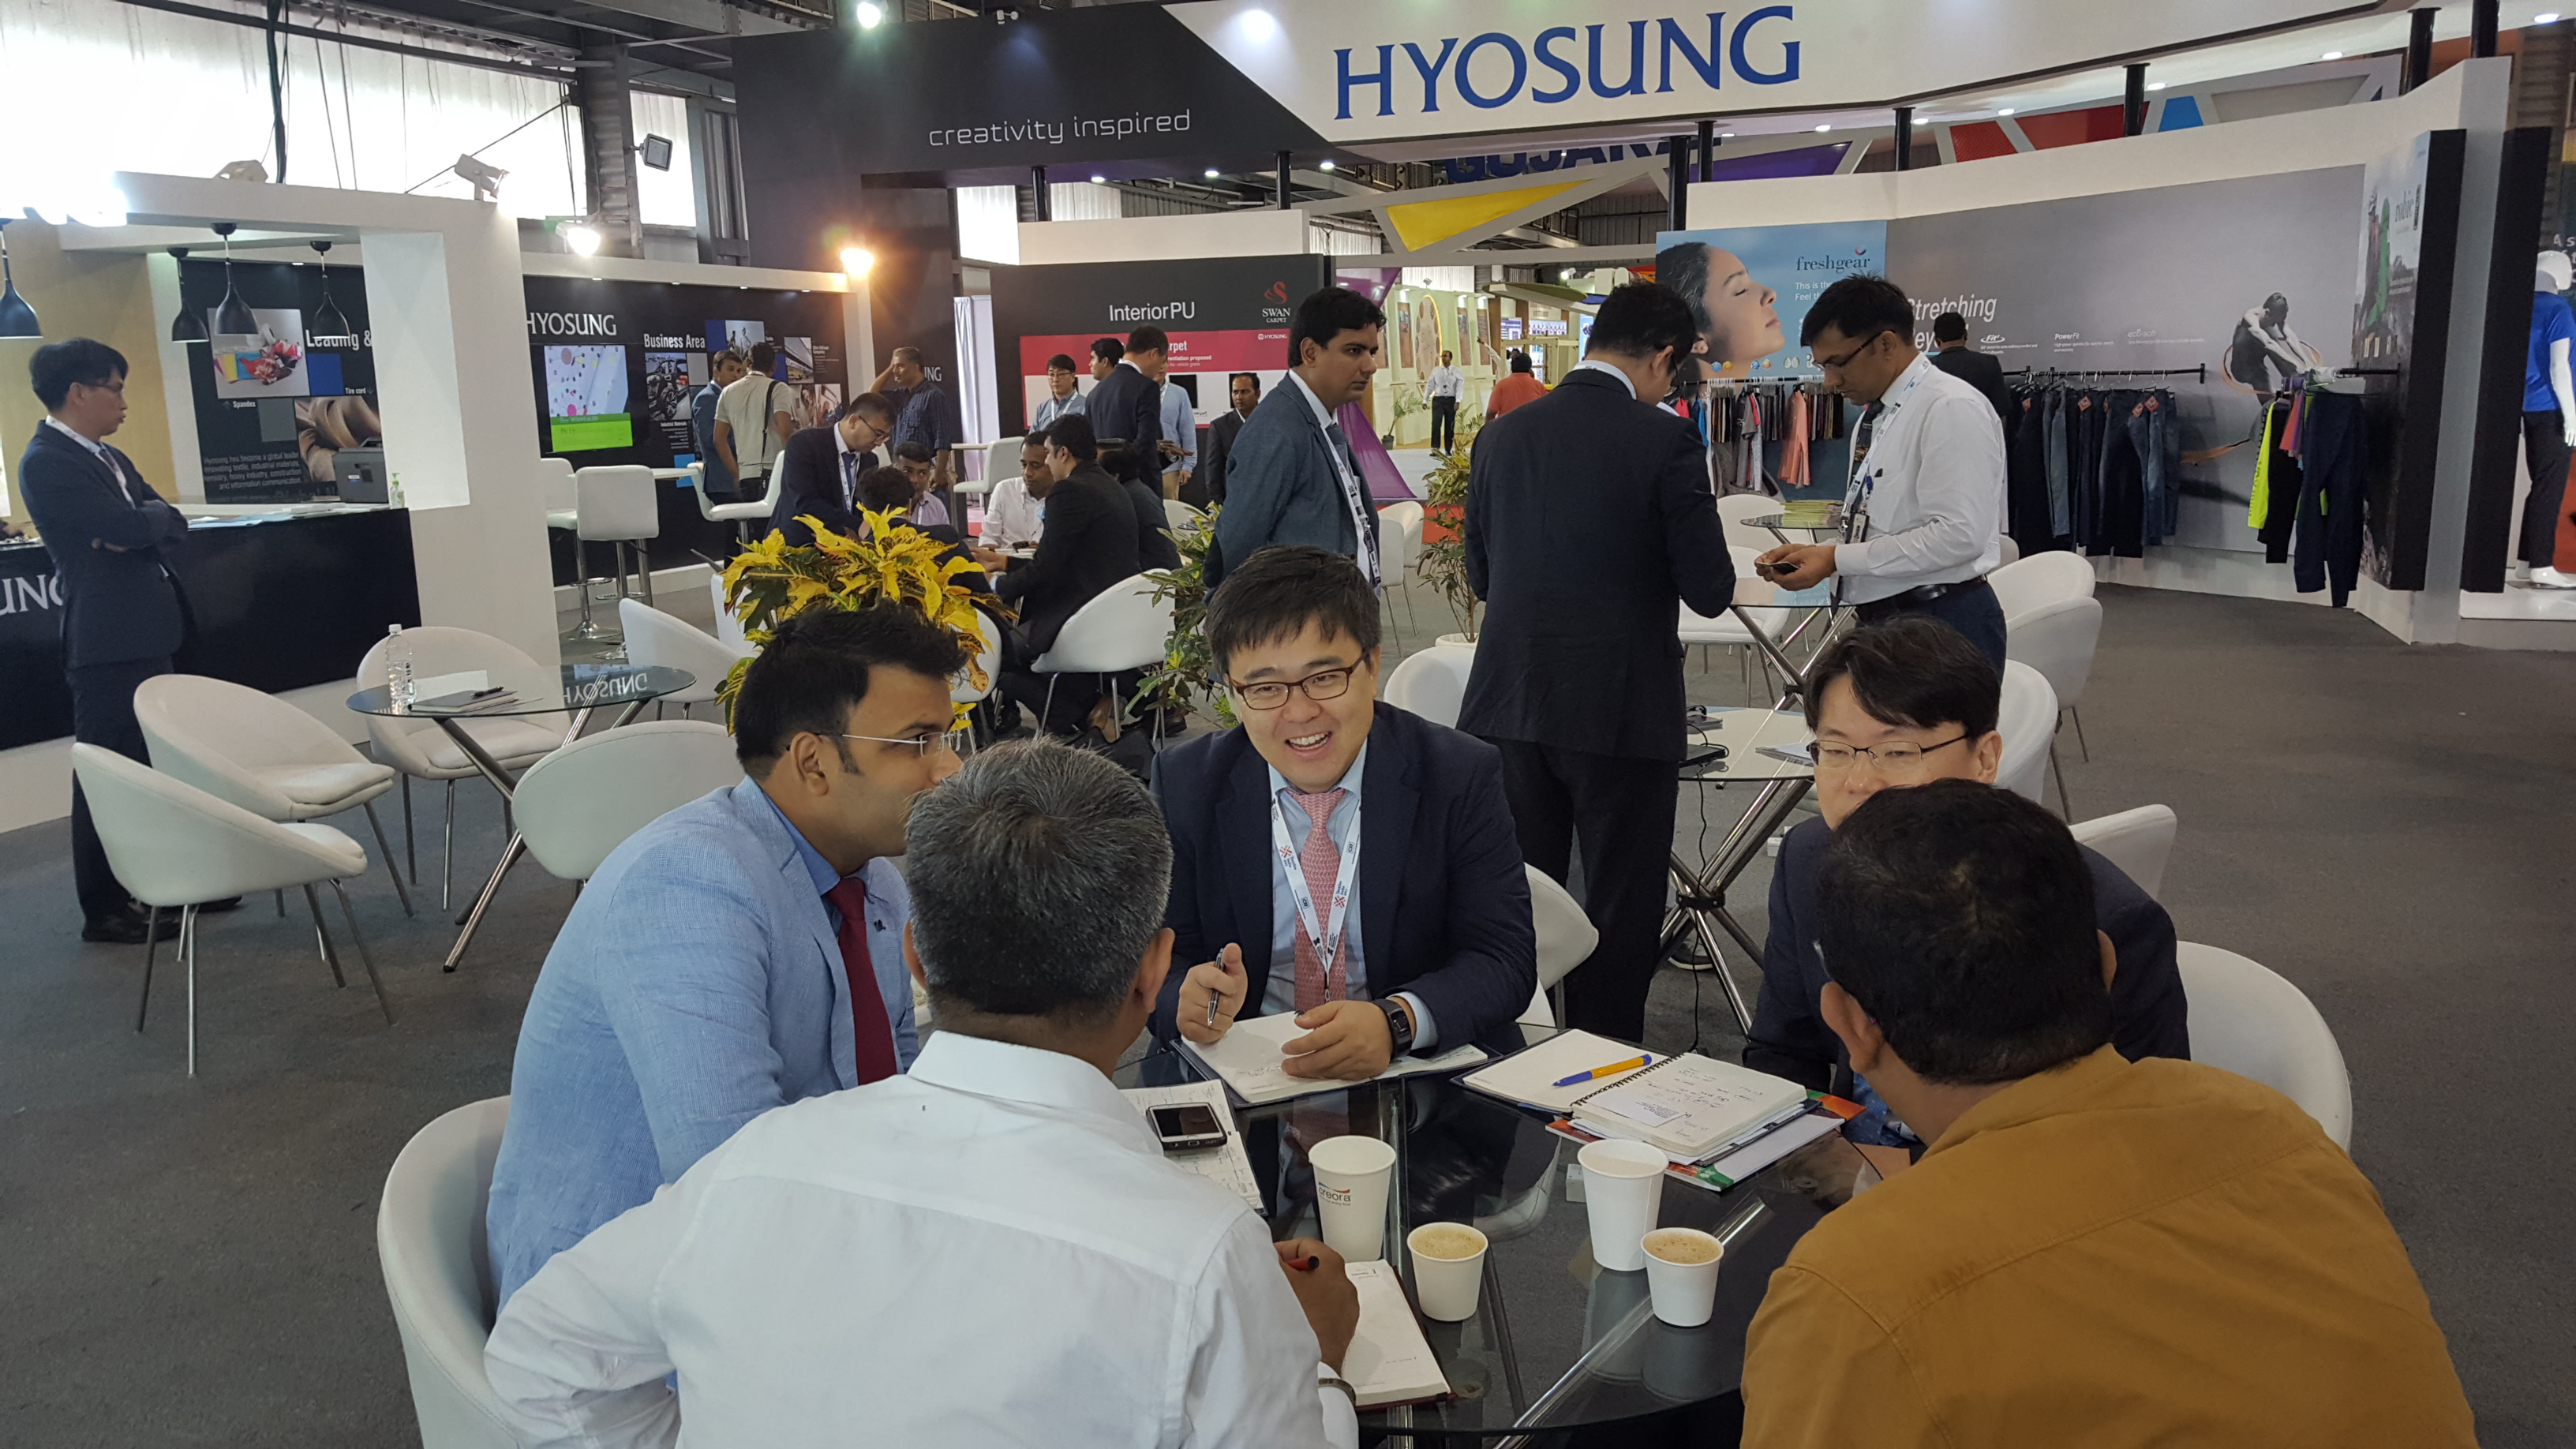 Hyosung announced on July 2 that it participated in the Textiles India 2017, showcasing a full lineup of its products such as spandex, nylon and polyester threads, automotive and commercial carpets, carbon fiber and aramid.